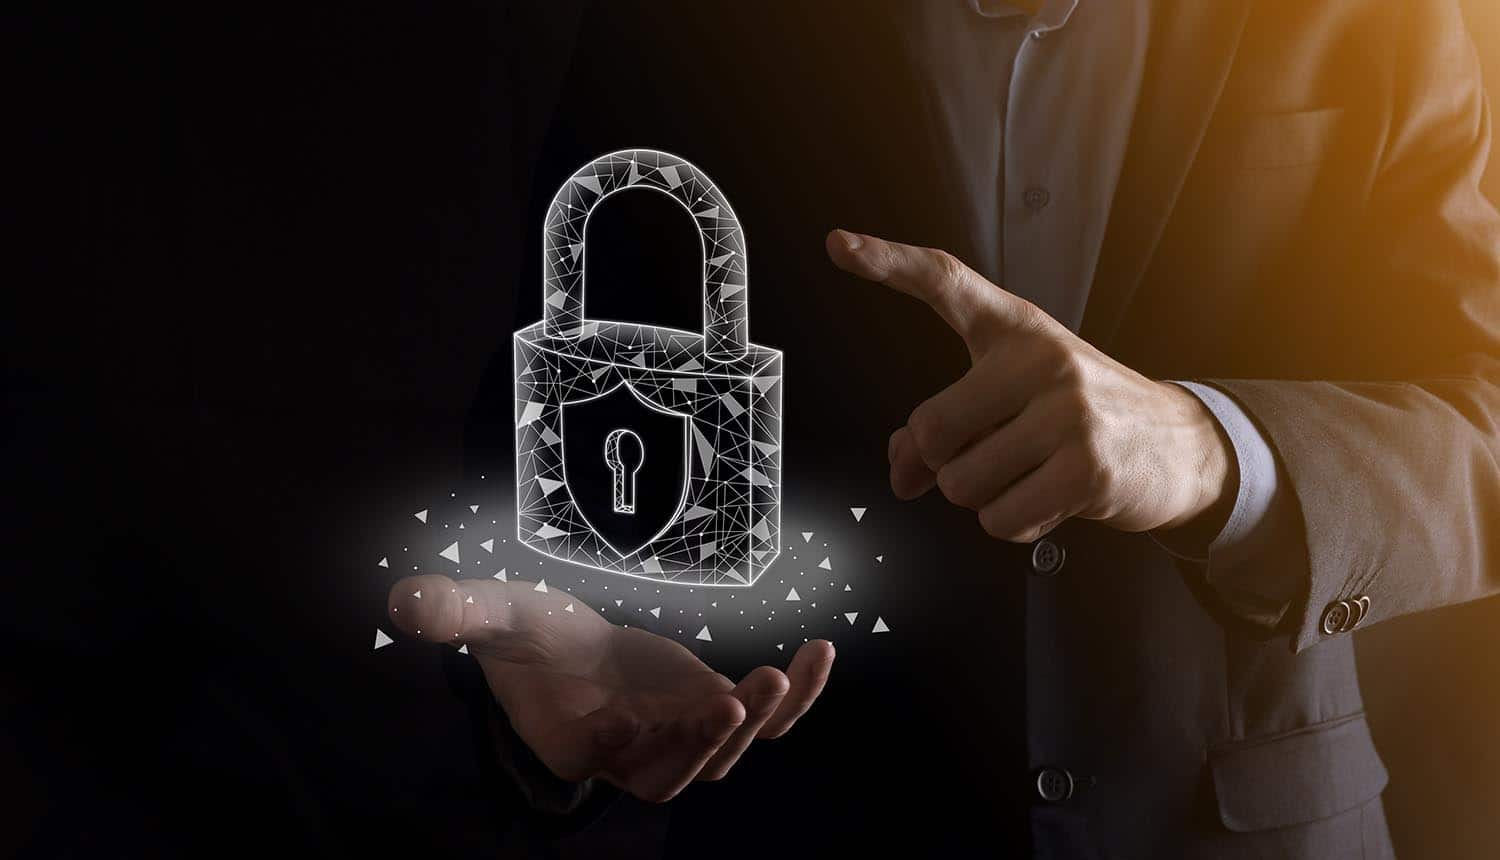 Hands holding a digital padlock showing endpoint security practices for stopping cyber attacks